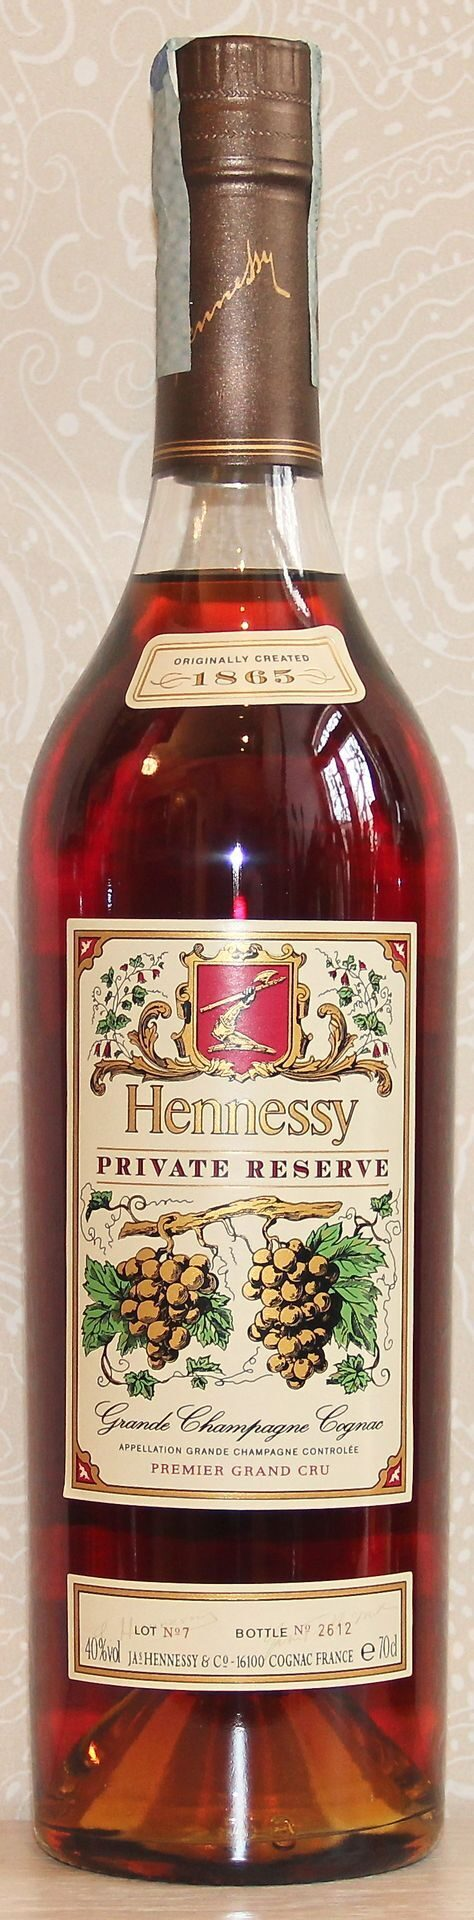 Hennessy Private Reserve 1865 2004